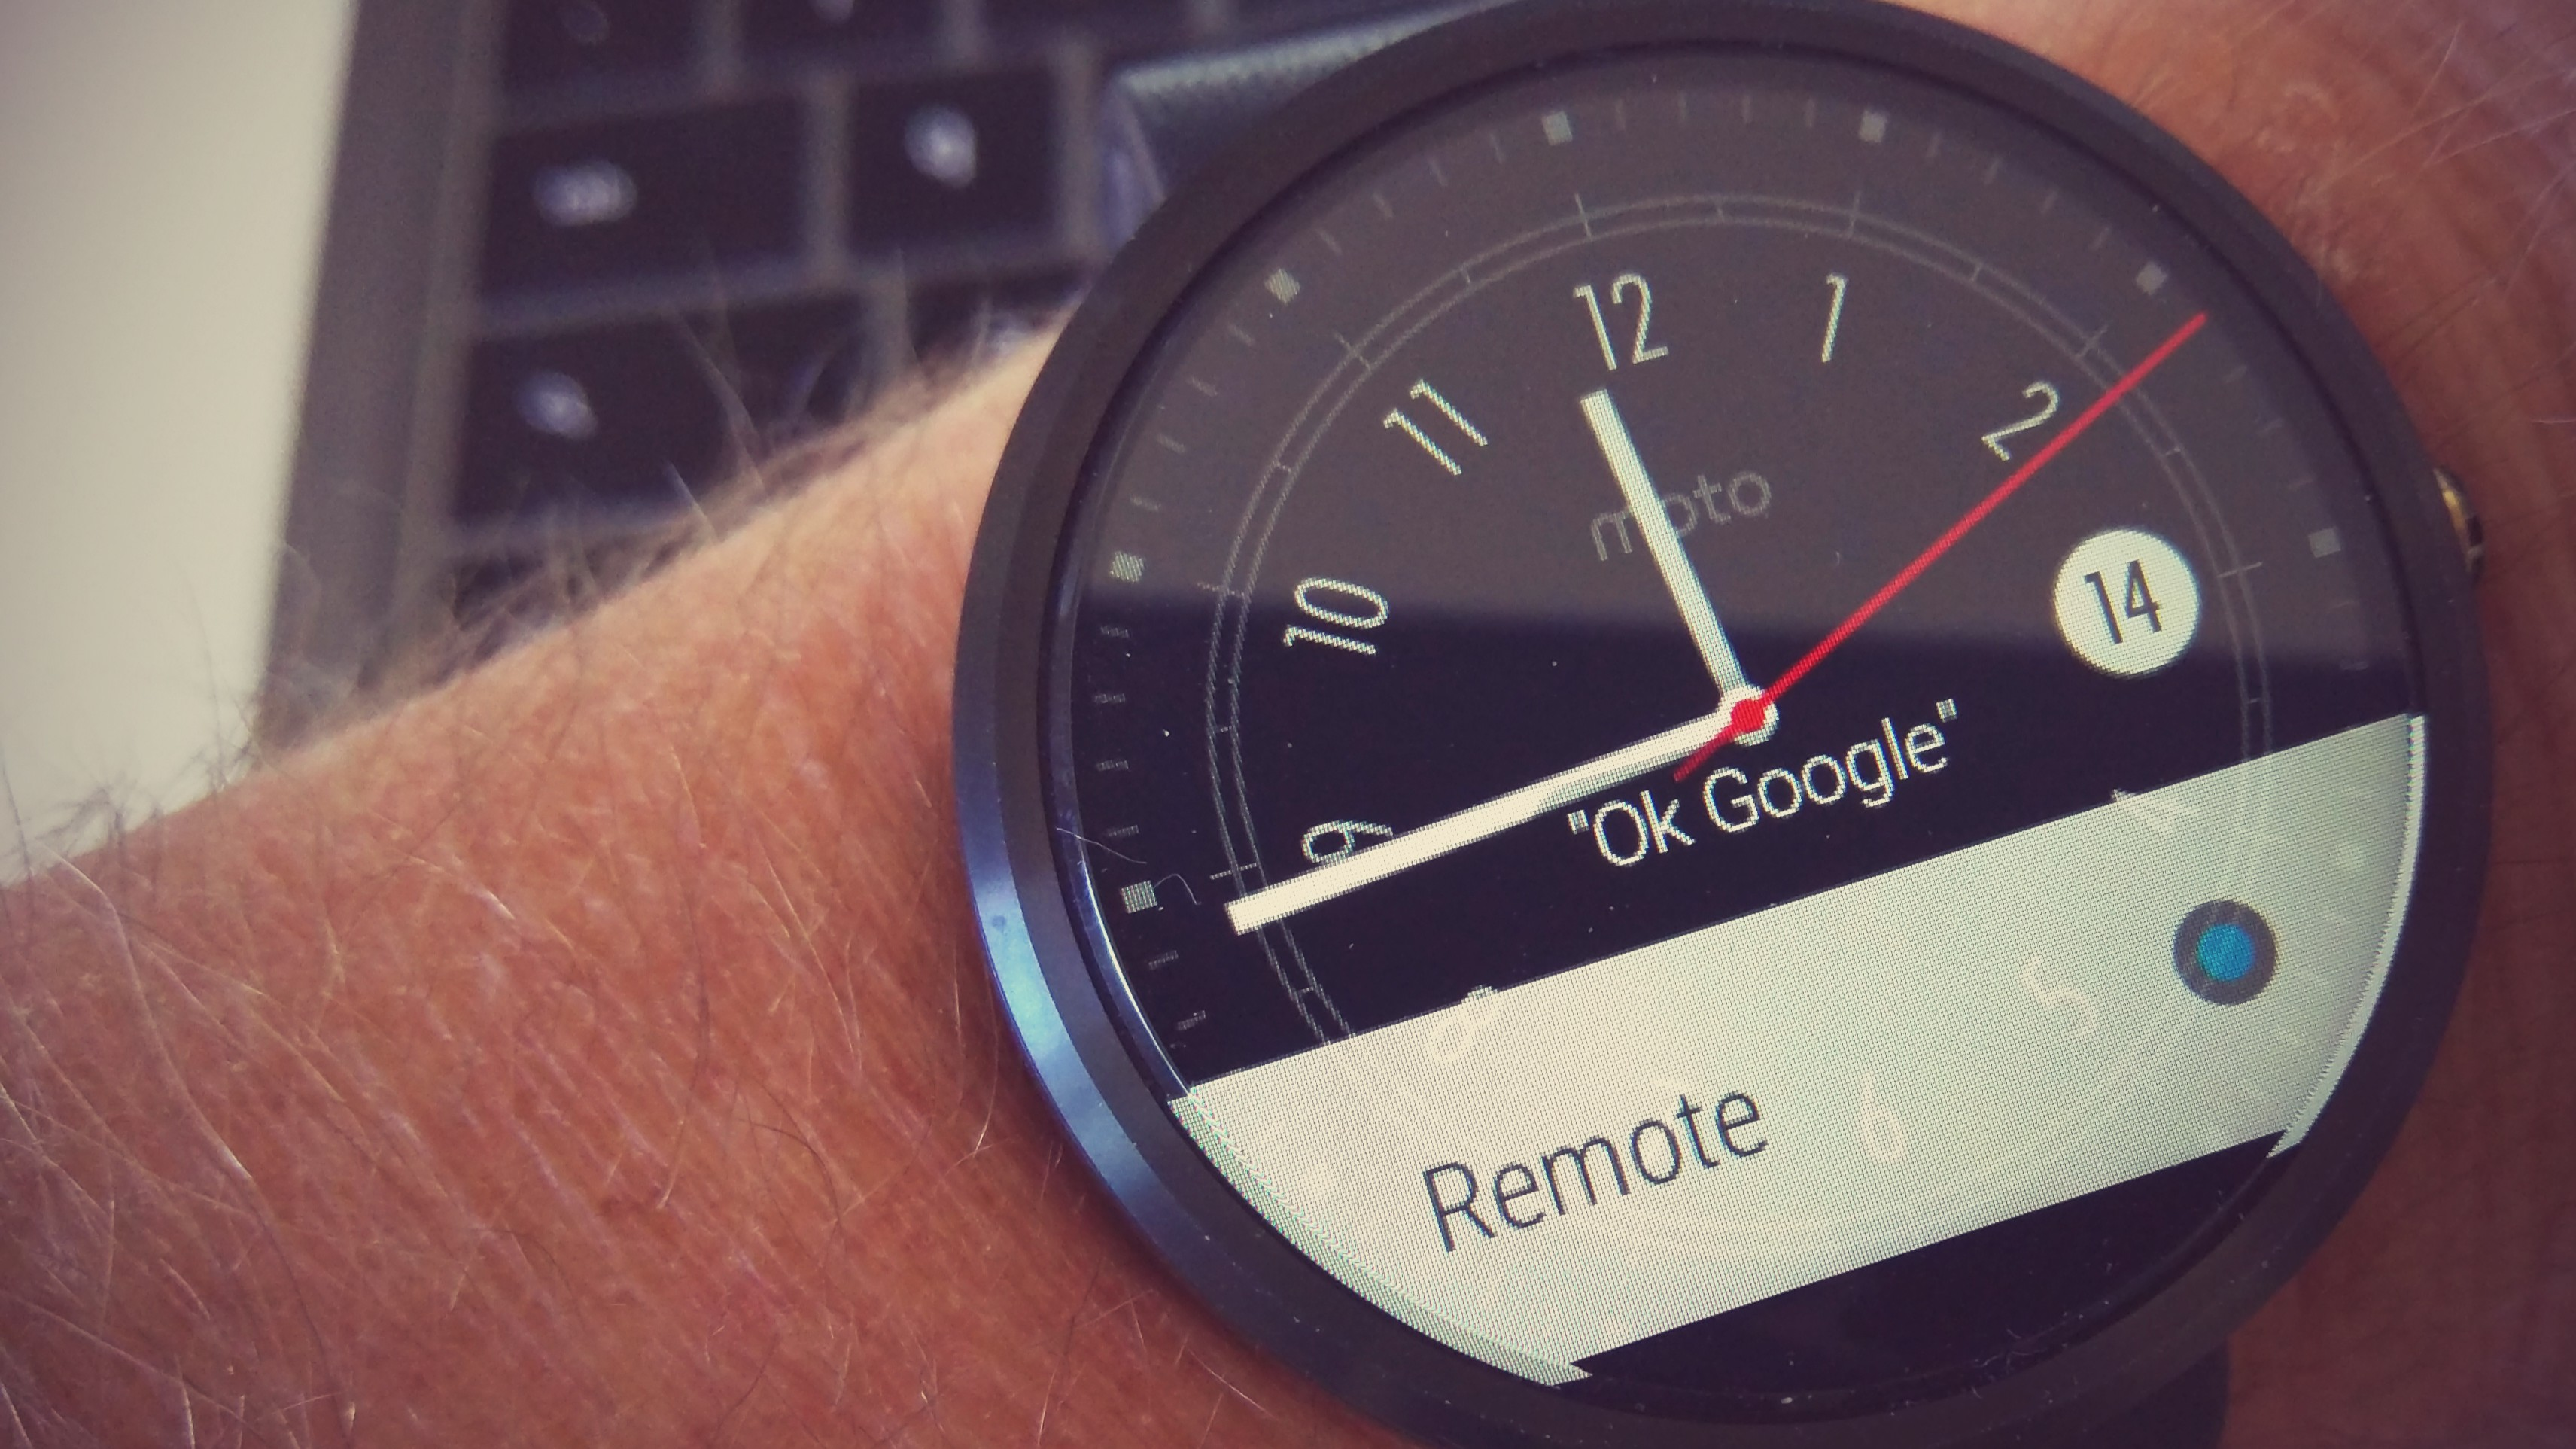 Fine! I admit it, maybe the smartwatch isn't such an awful ...